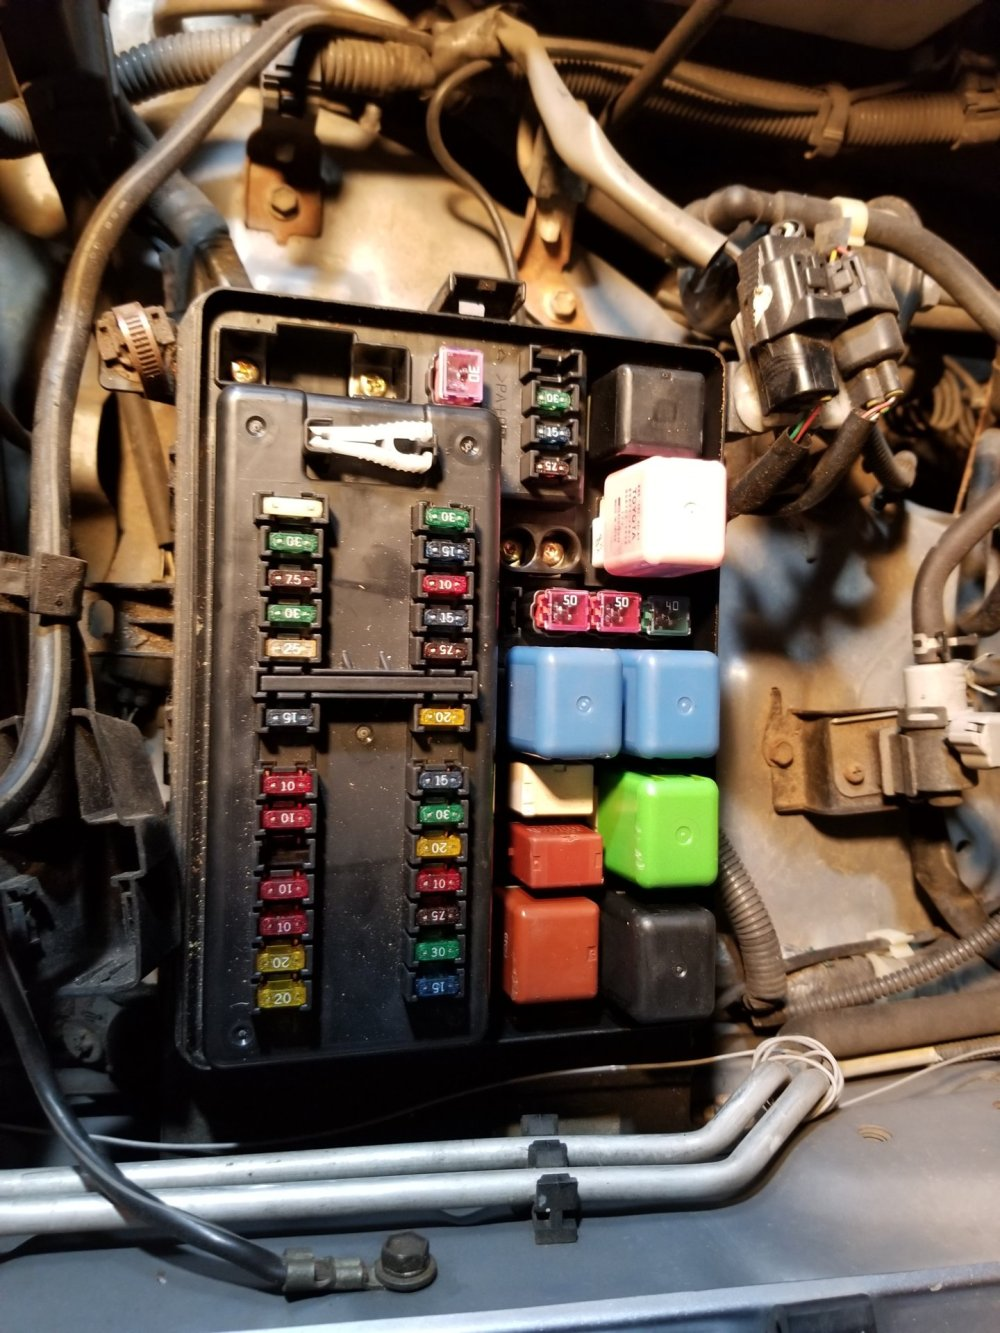 medium resolution of ac magnetic clutch relay location on 2003 lx470